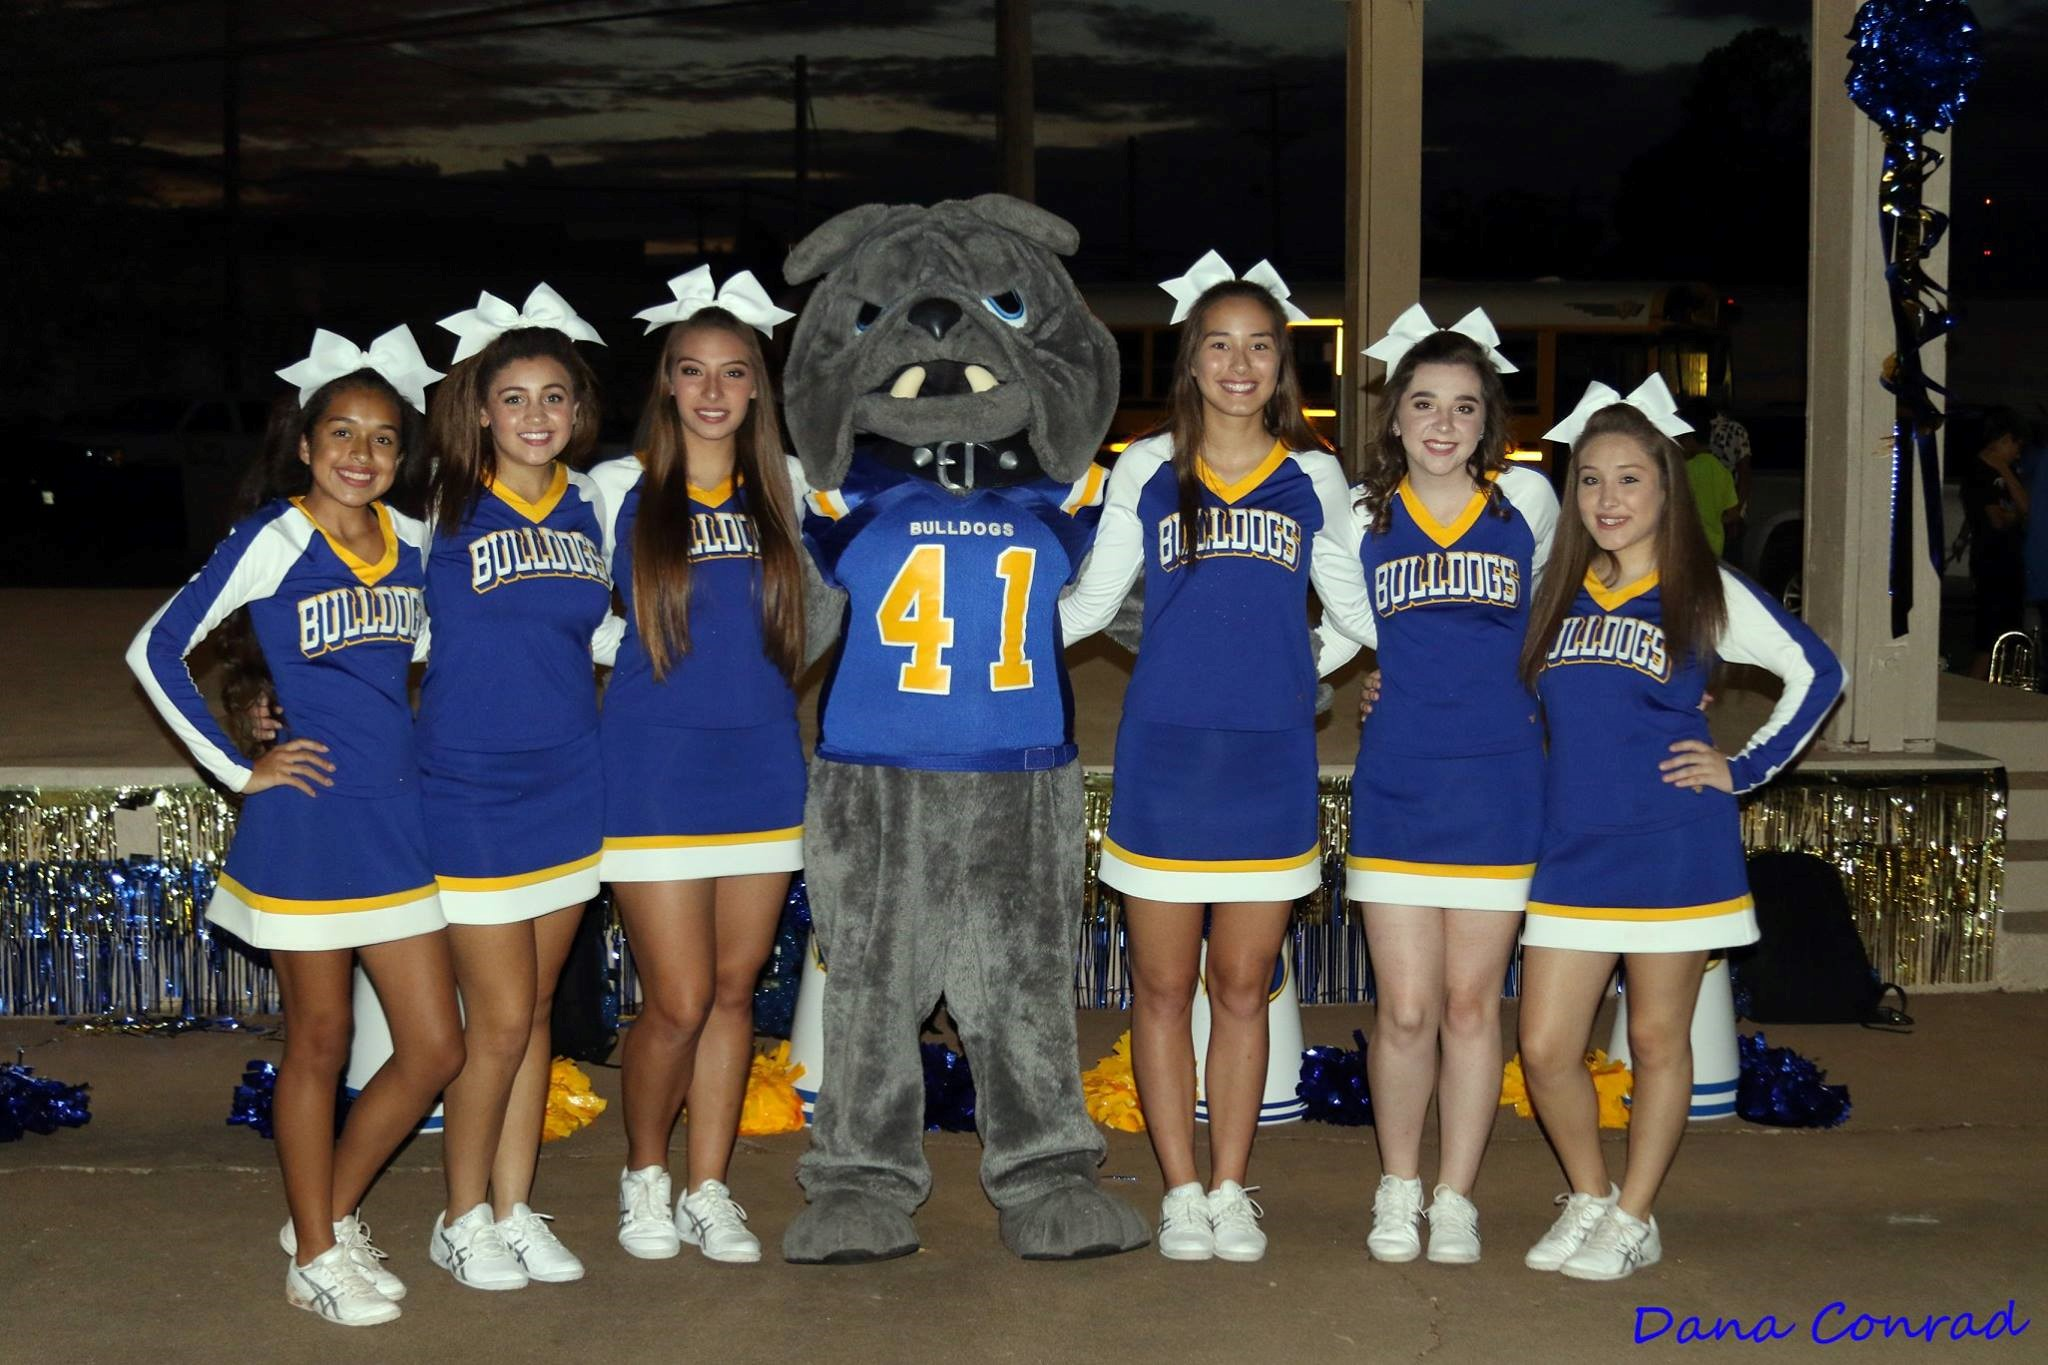 The cheerleaders all posing with the school's mascot.